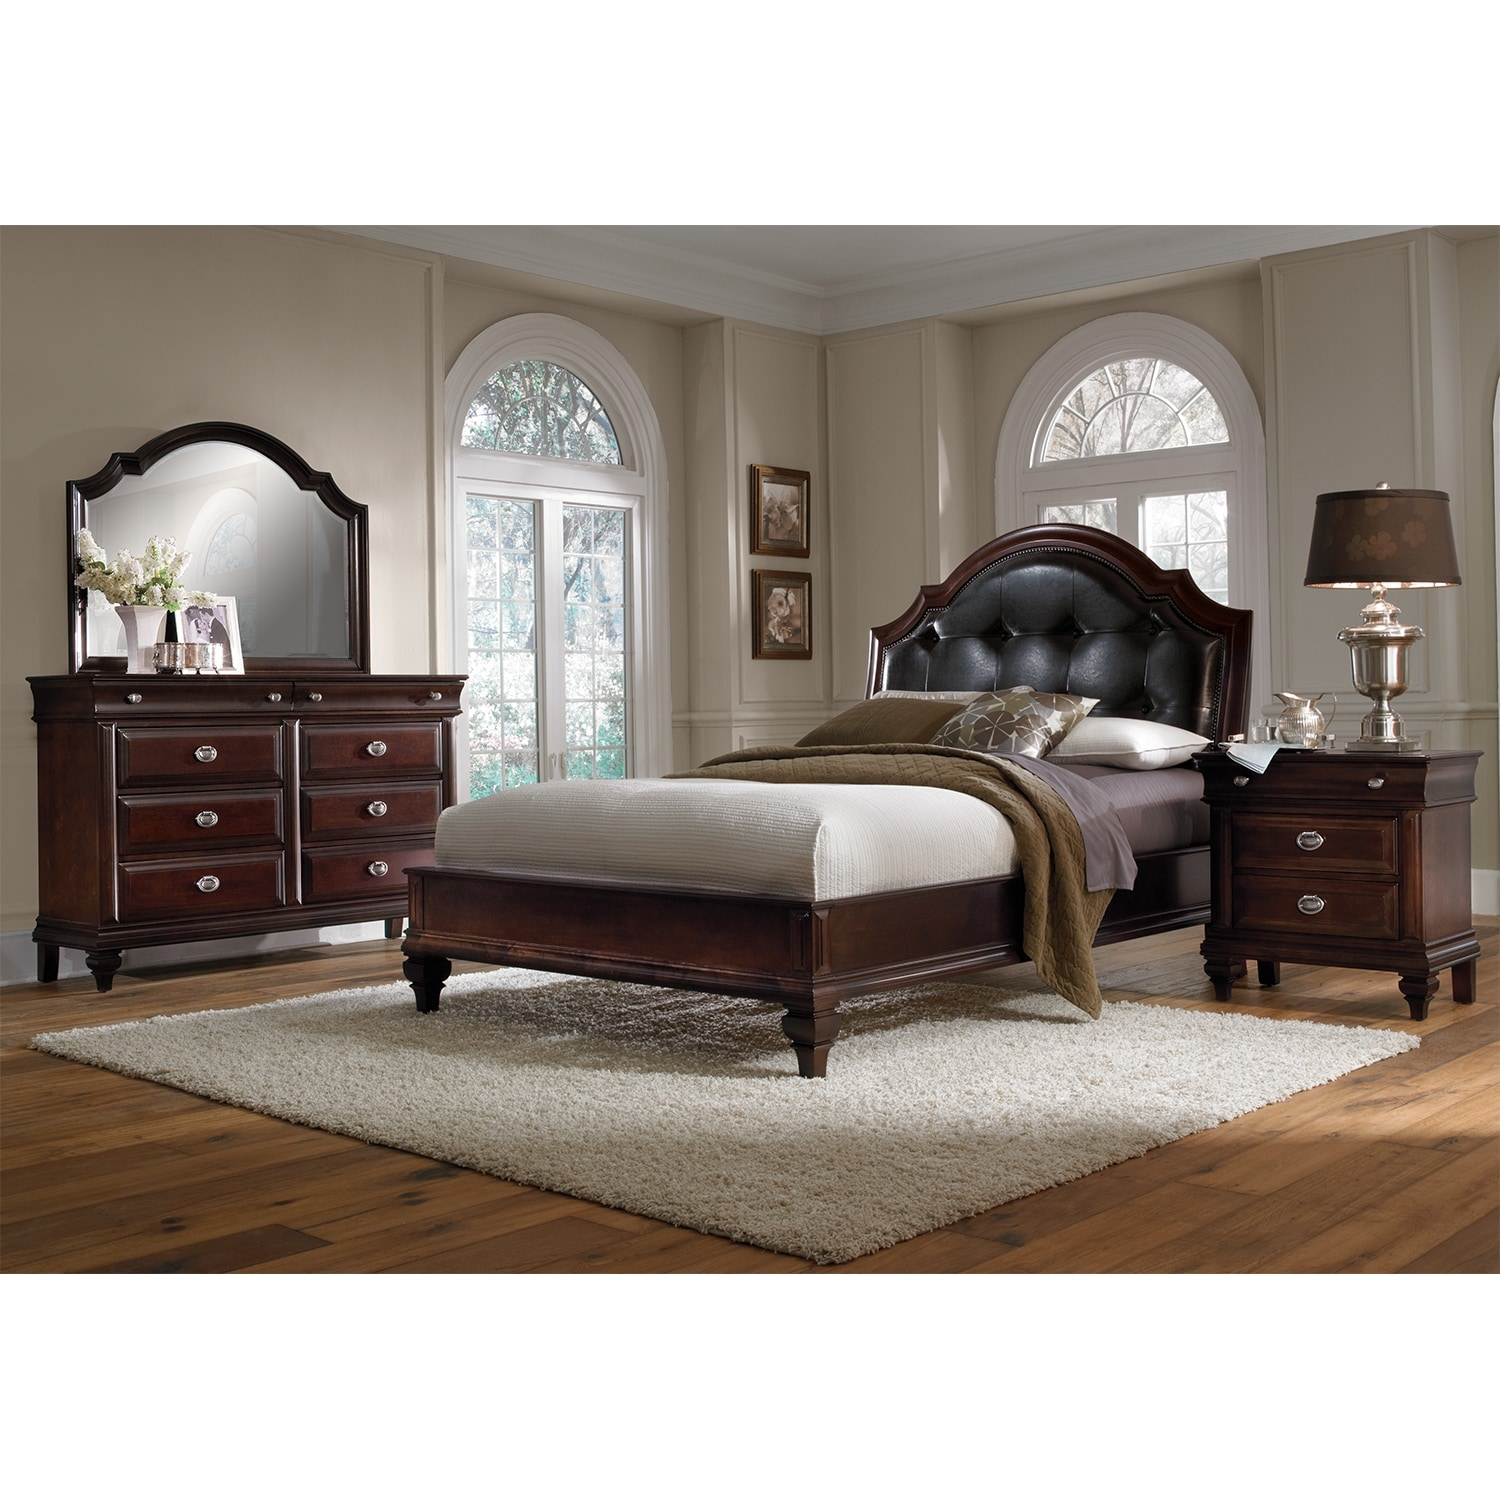 Manhattan 6 Piece Queen Bedroom Set Cherry Value City